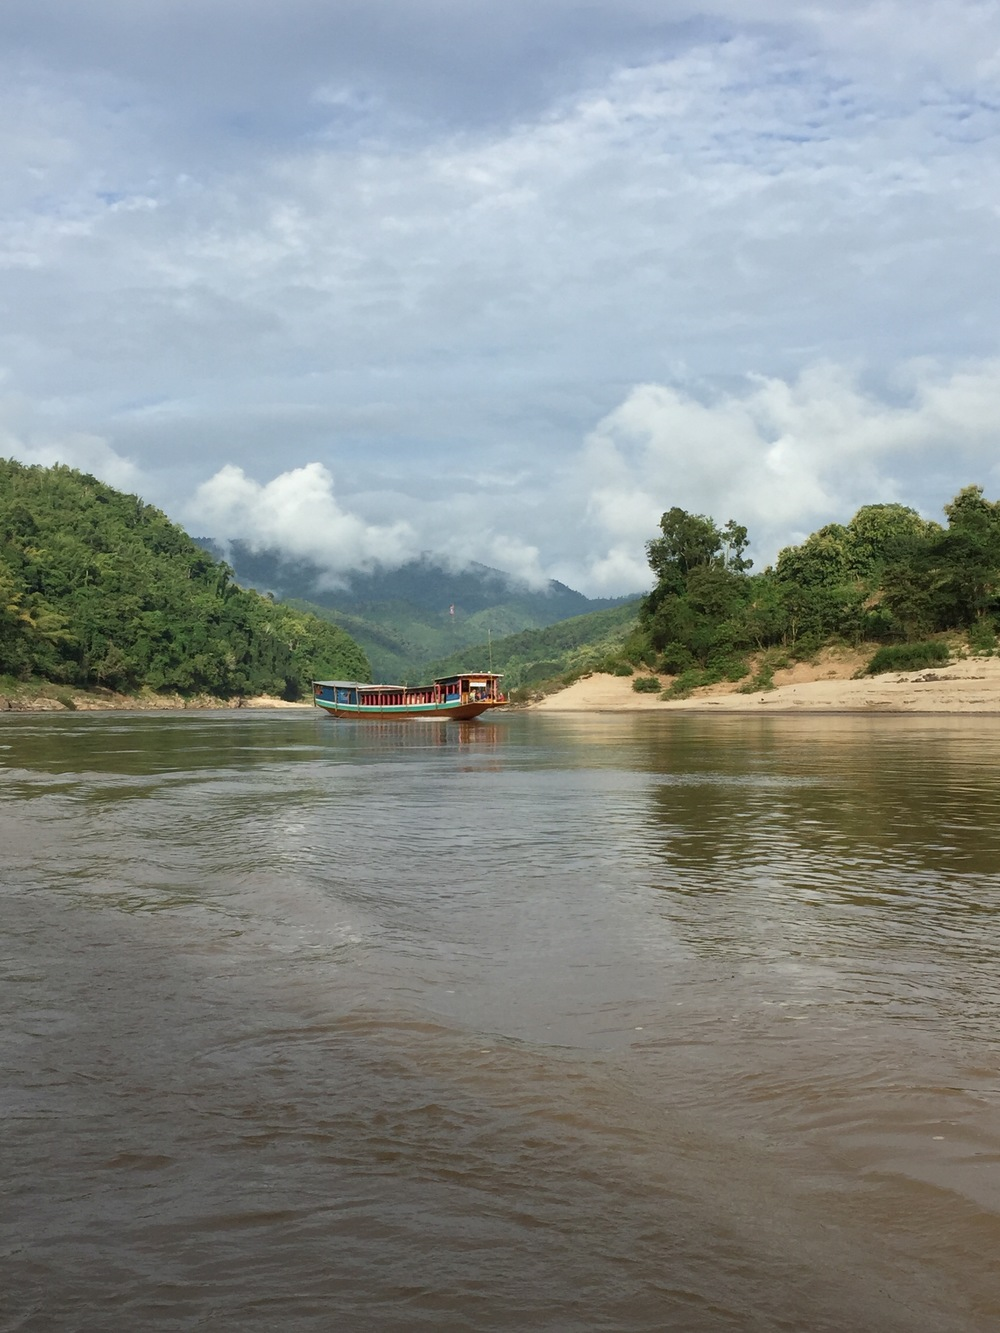 Sandy beaches along the Mekong River in Laos show the wide range in high water marks resulting from erratic water releases from dams upstream in China.